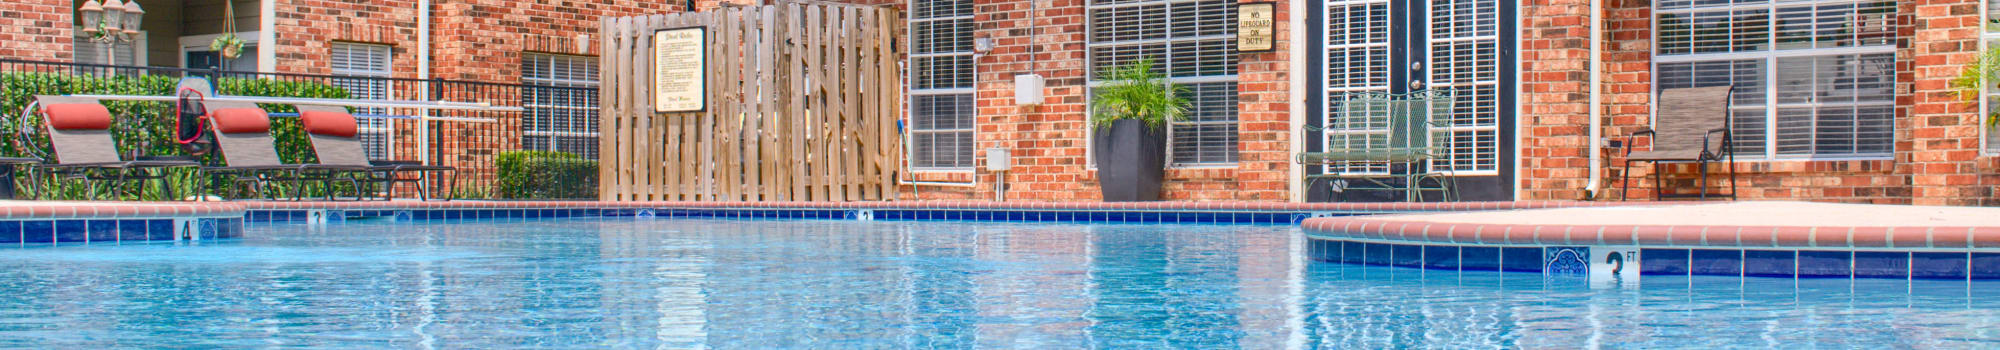 Amenities at The Lexington Apartment Homes in Biloxi, Mississippi